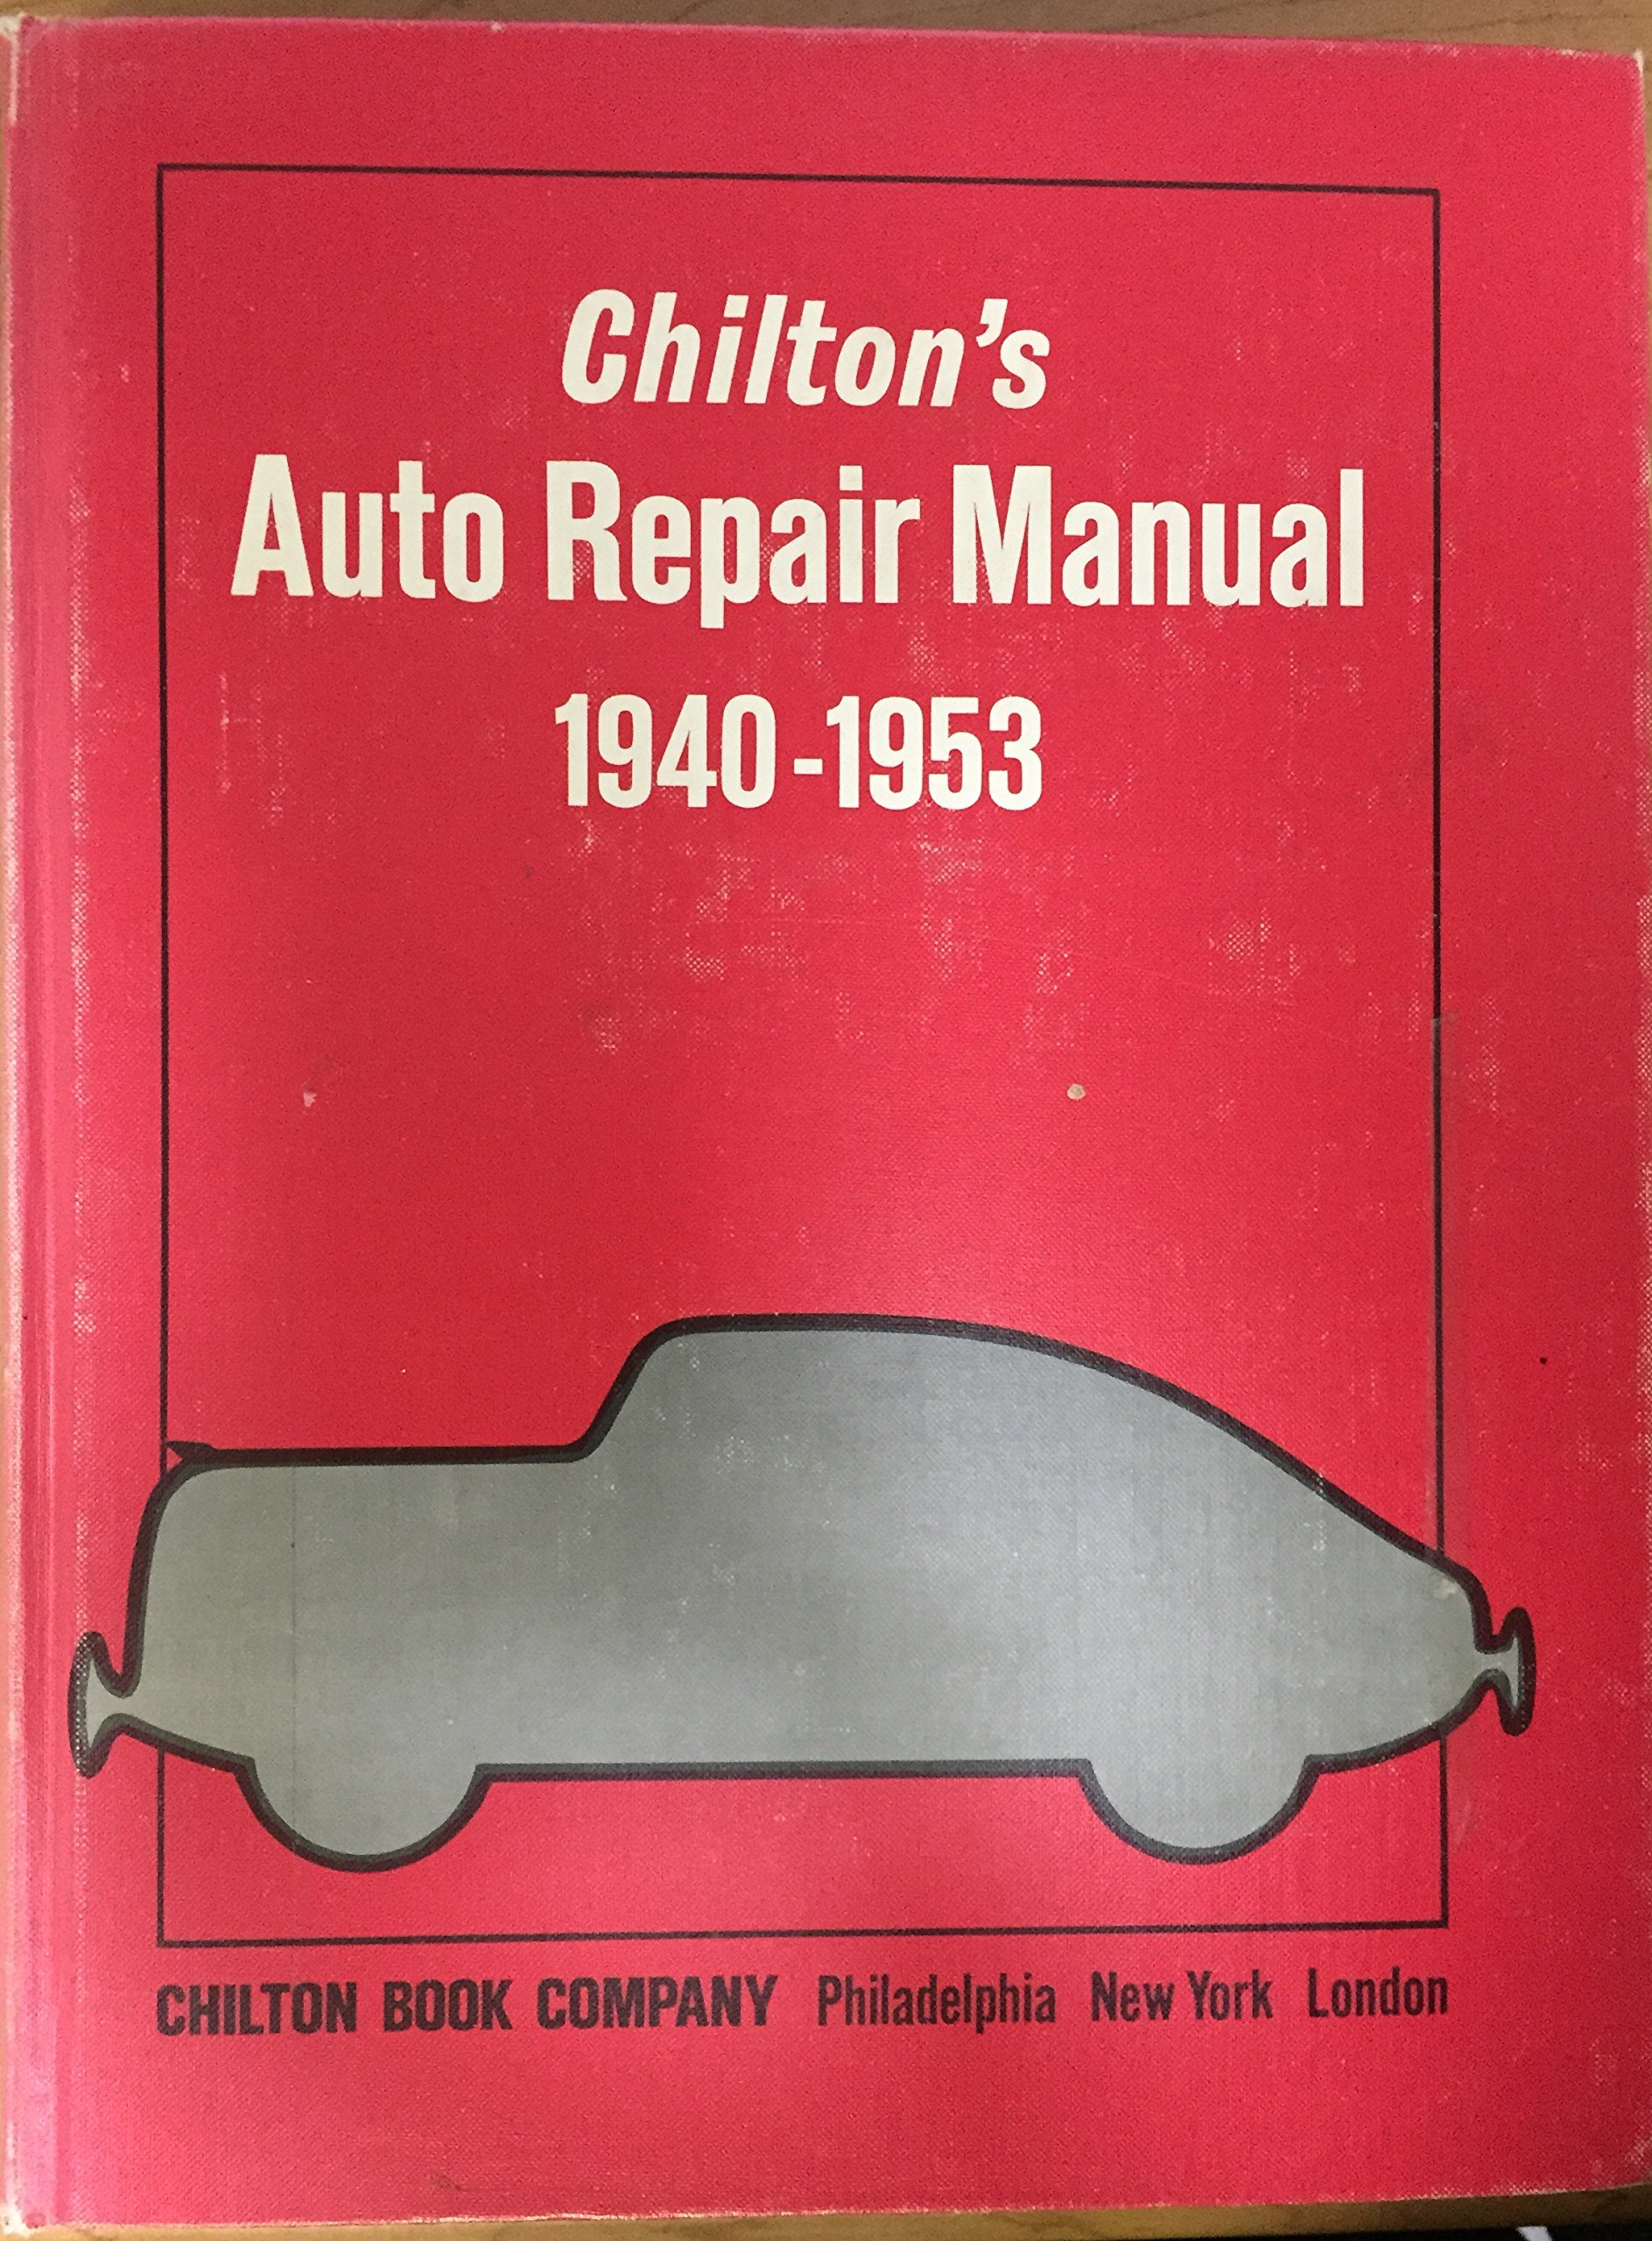 Chilton`s Auto Repair Manual 1940-1953: Chilton Automotive Book Department:  Amazon.com: Books